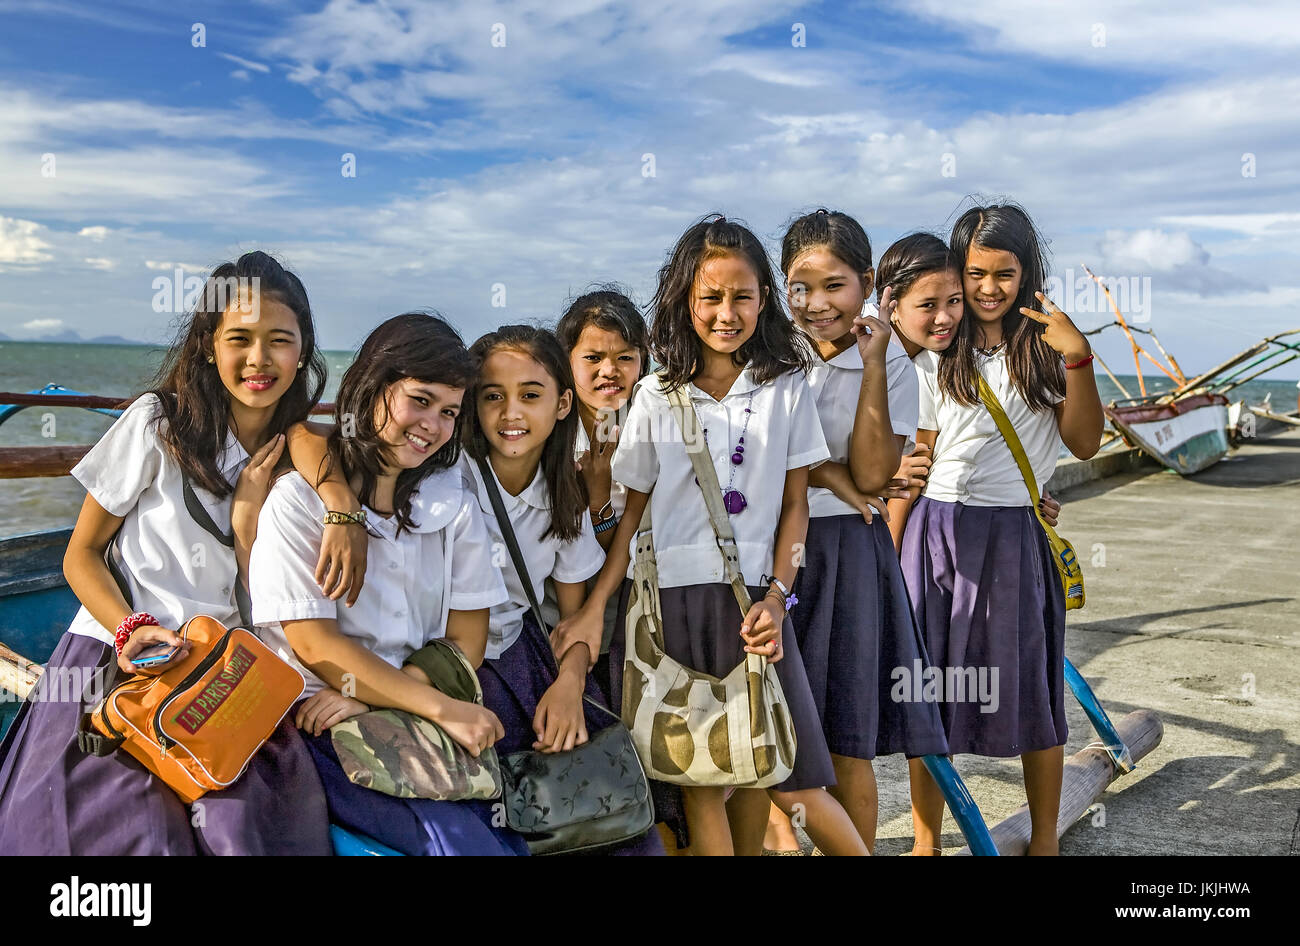 Happy girl children in uniforms from the Philippines on their way to school. - Stock Image